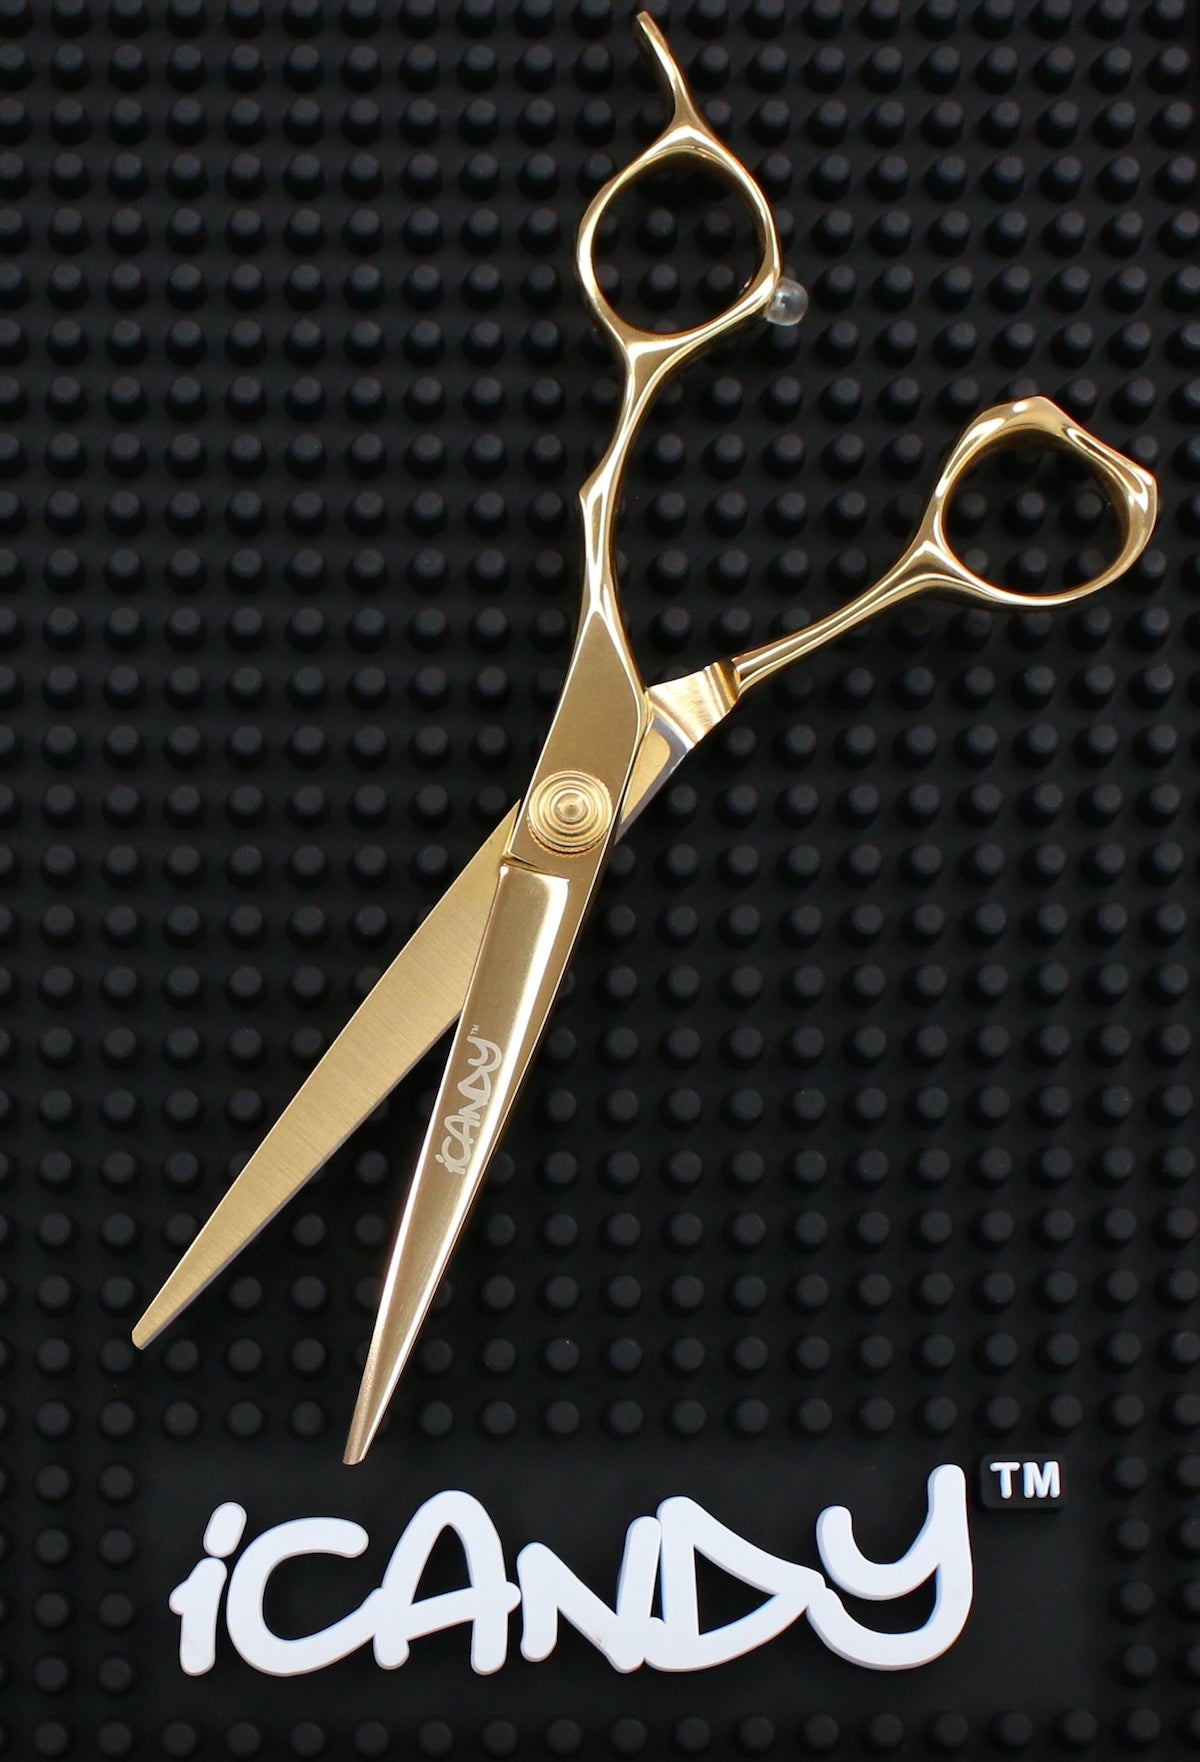 iCandy LUXE Taper Pro Yellow Gold Barbering Scissor  (6.0 inch) Limited Edition! - iCandy Scissors